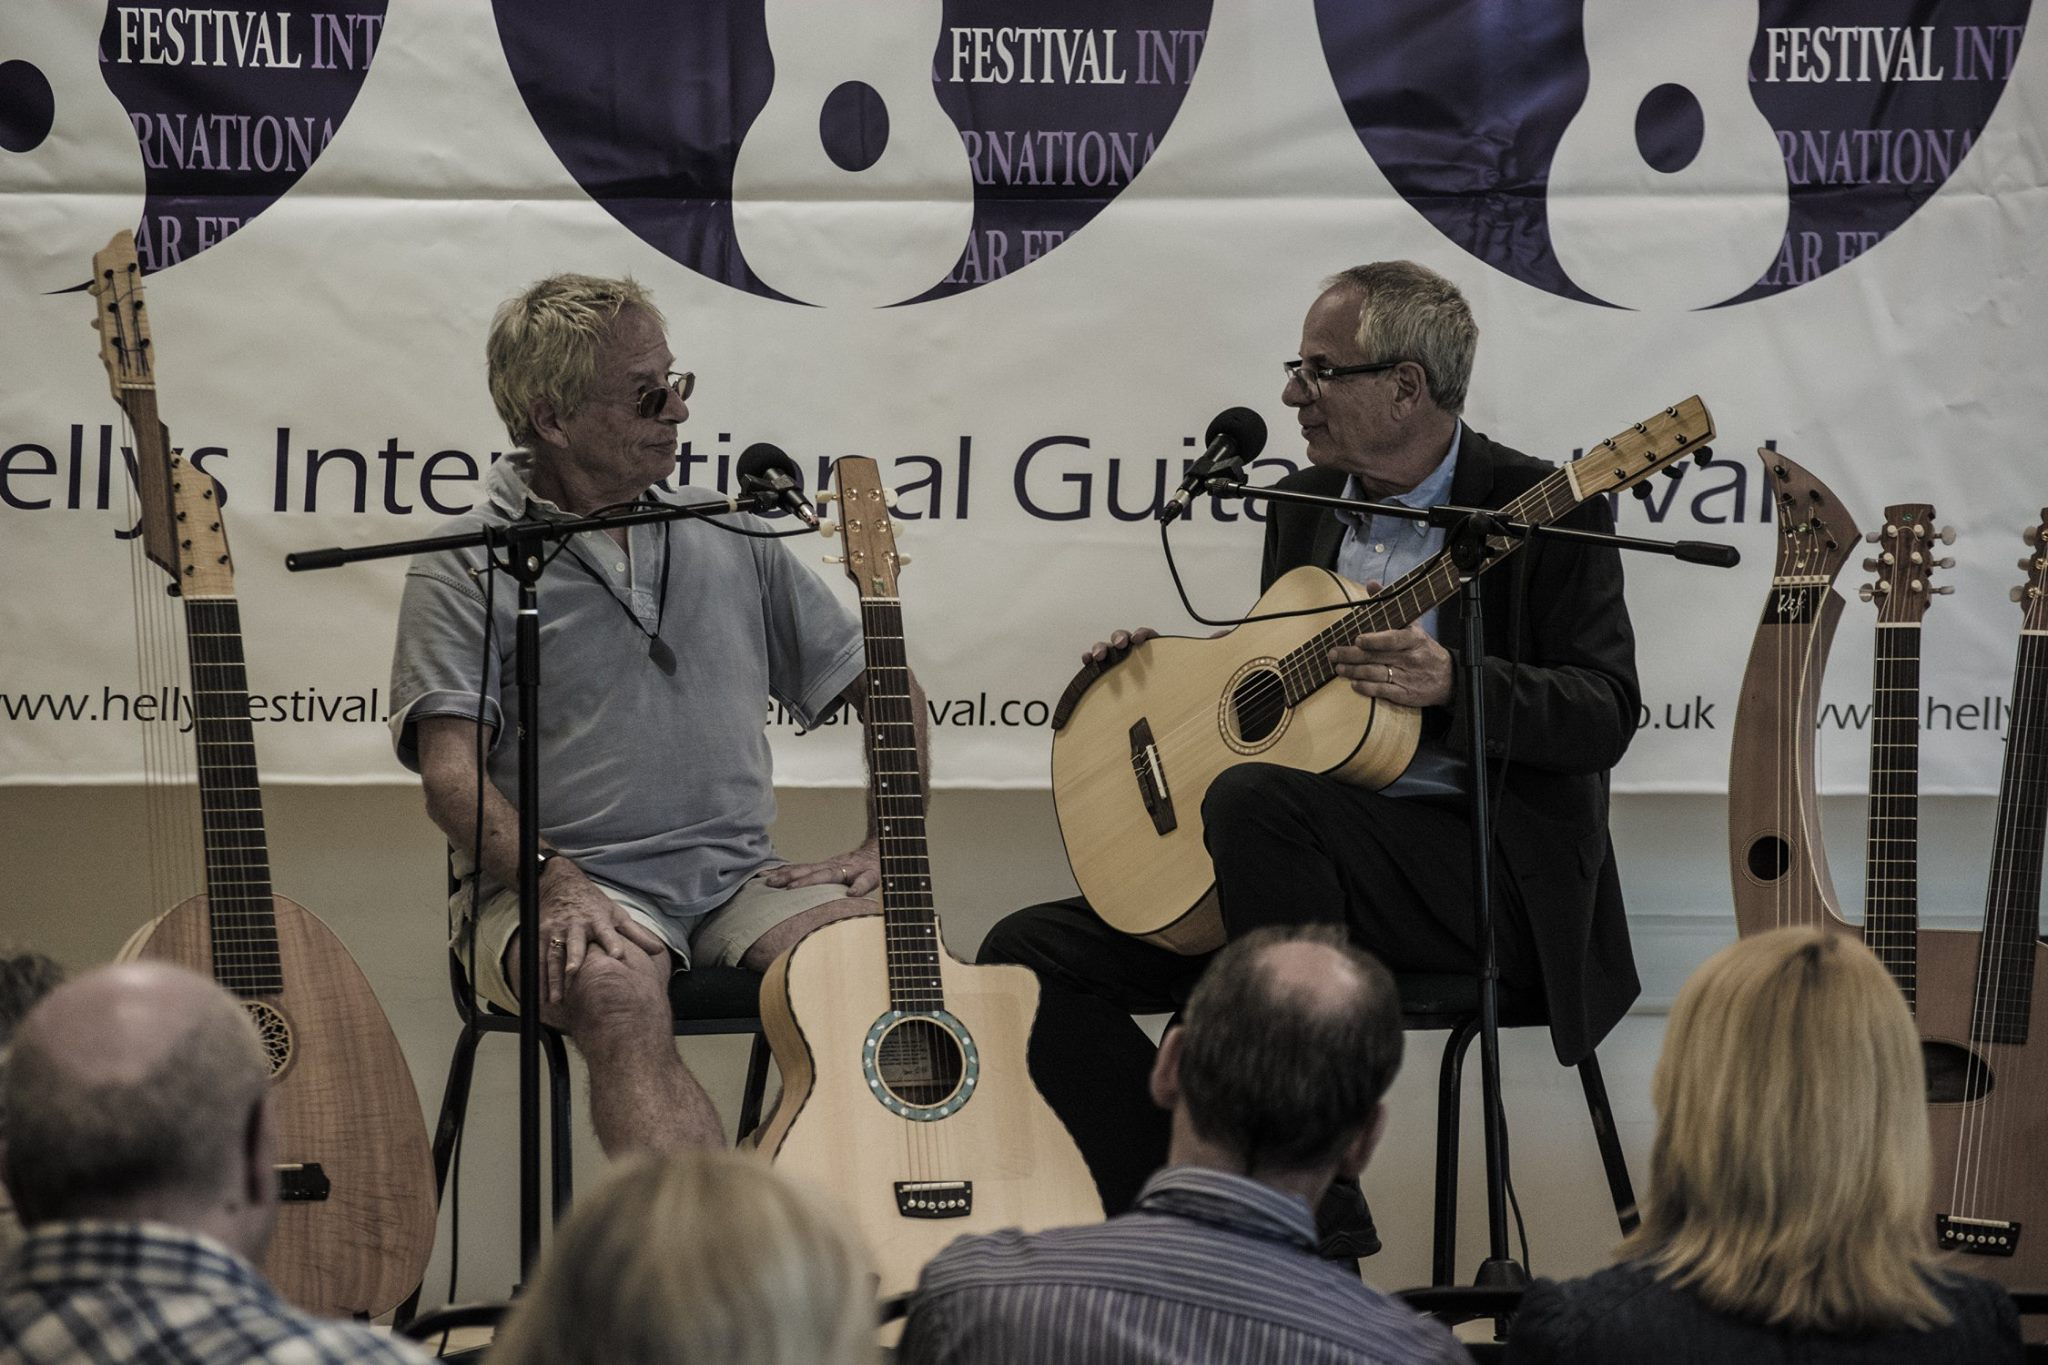 With Kif Wood, master luthier, Hellys Guitar Festival